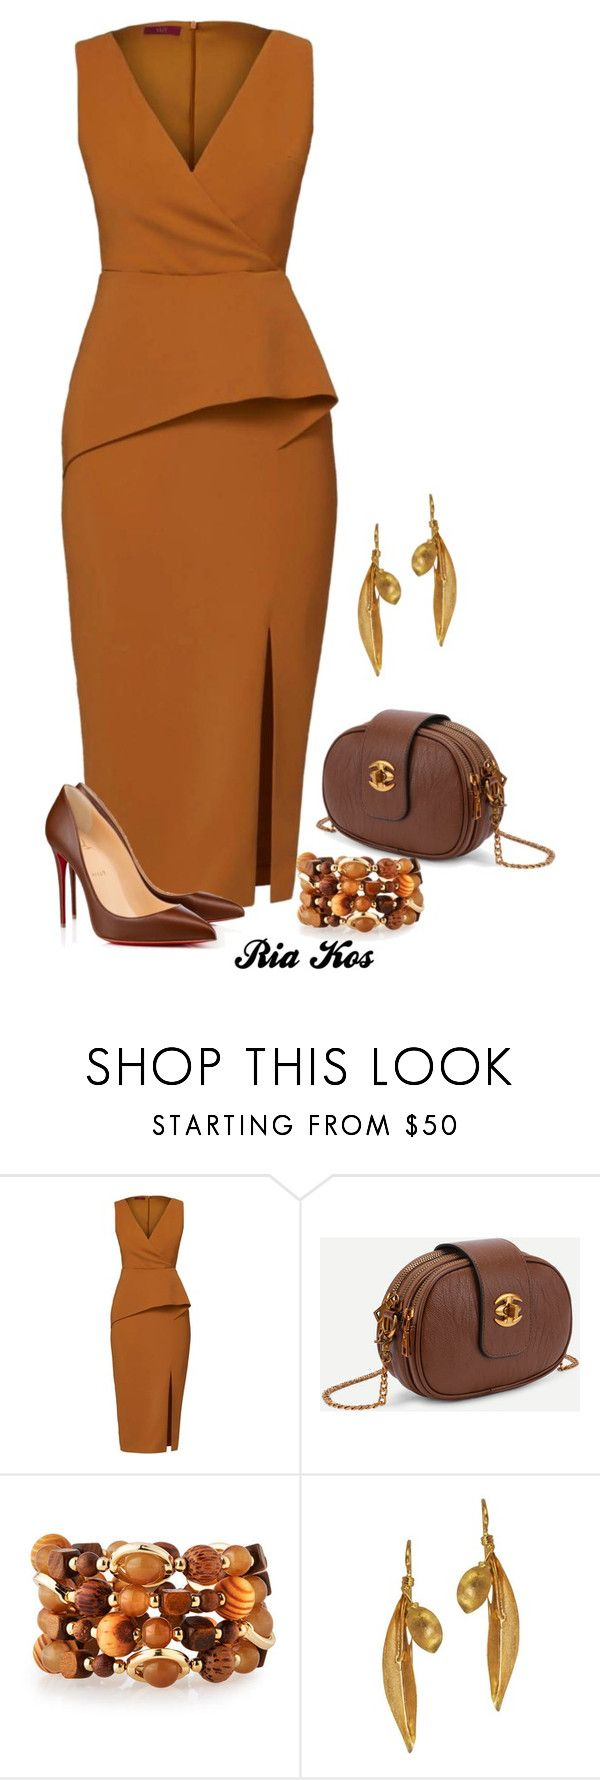 """""""beautiful dress"""" by ria-kos ❤ liked on Polyvore featuring WtR, Christian Louboutin, Emily & Ashley and Vassiliki"""